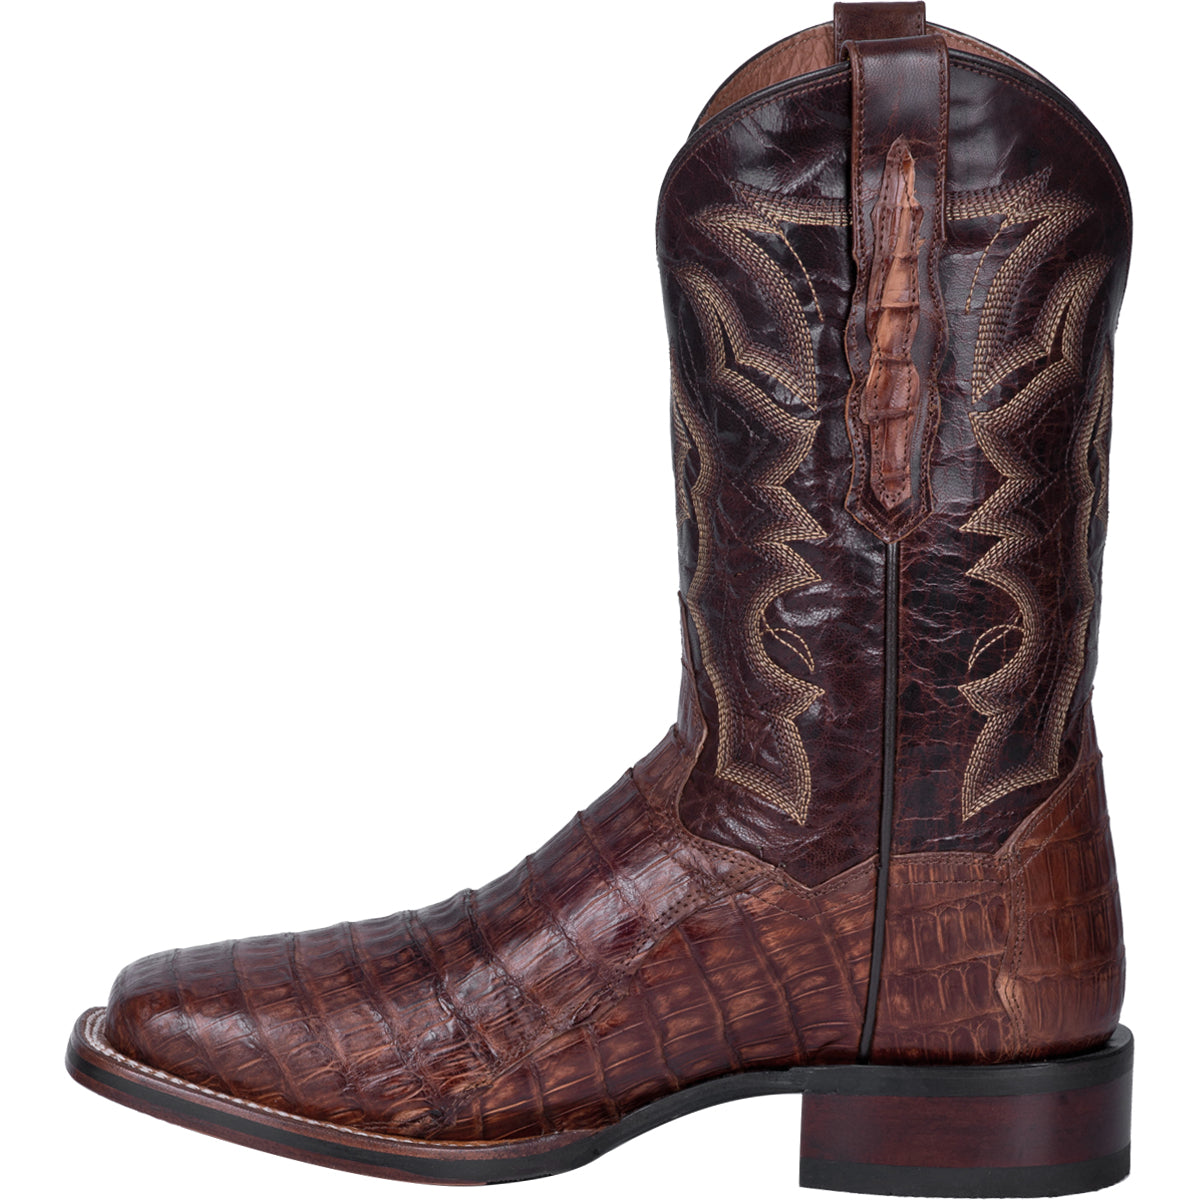 KINGSLY CAIMAN BOOT 12134318473258